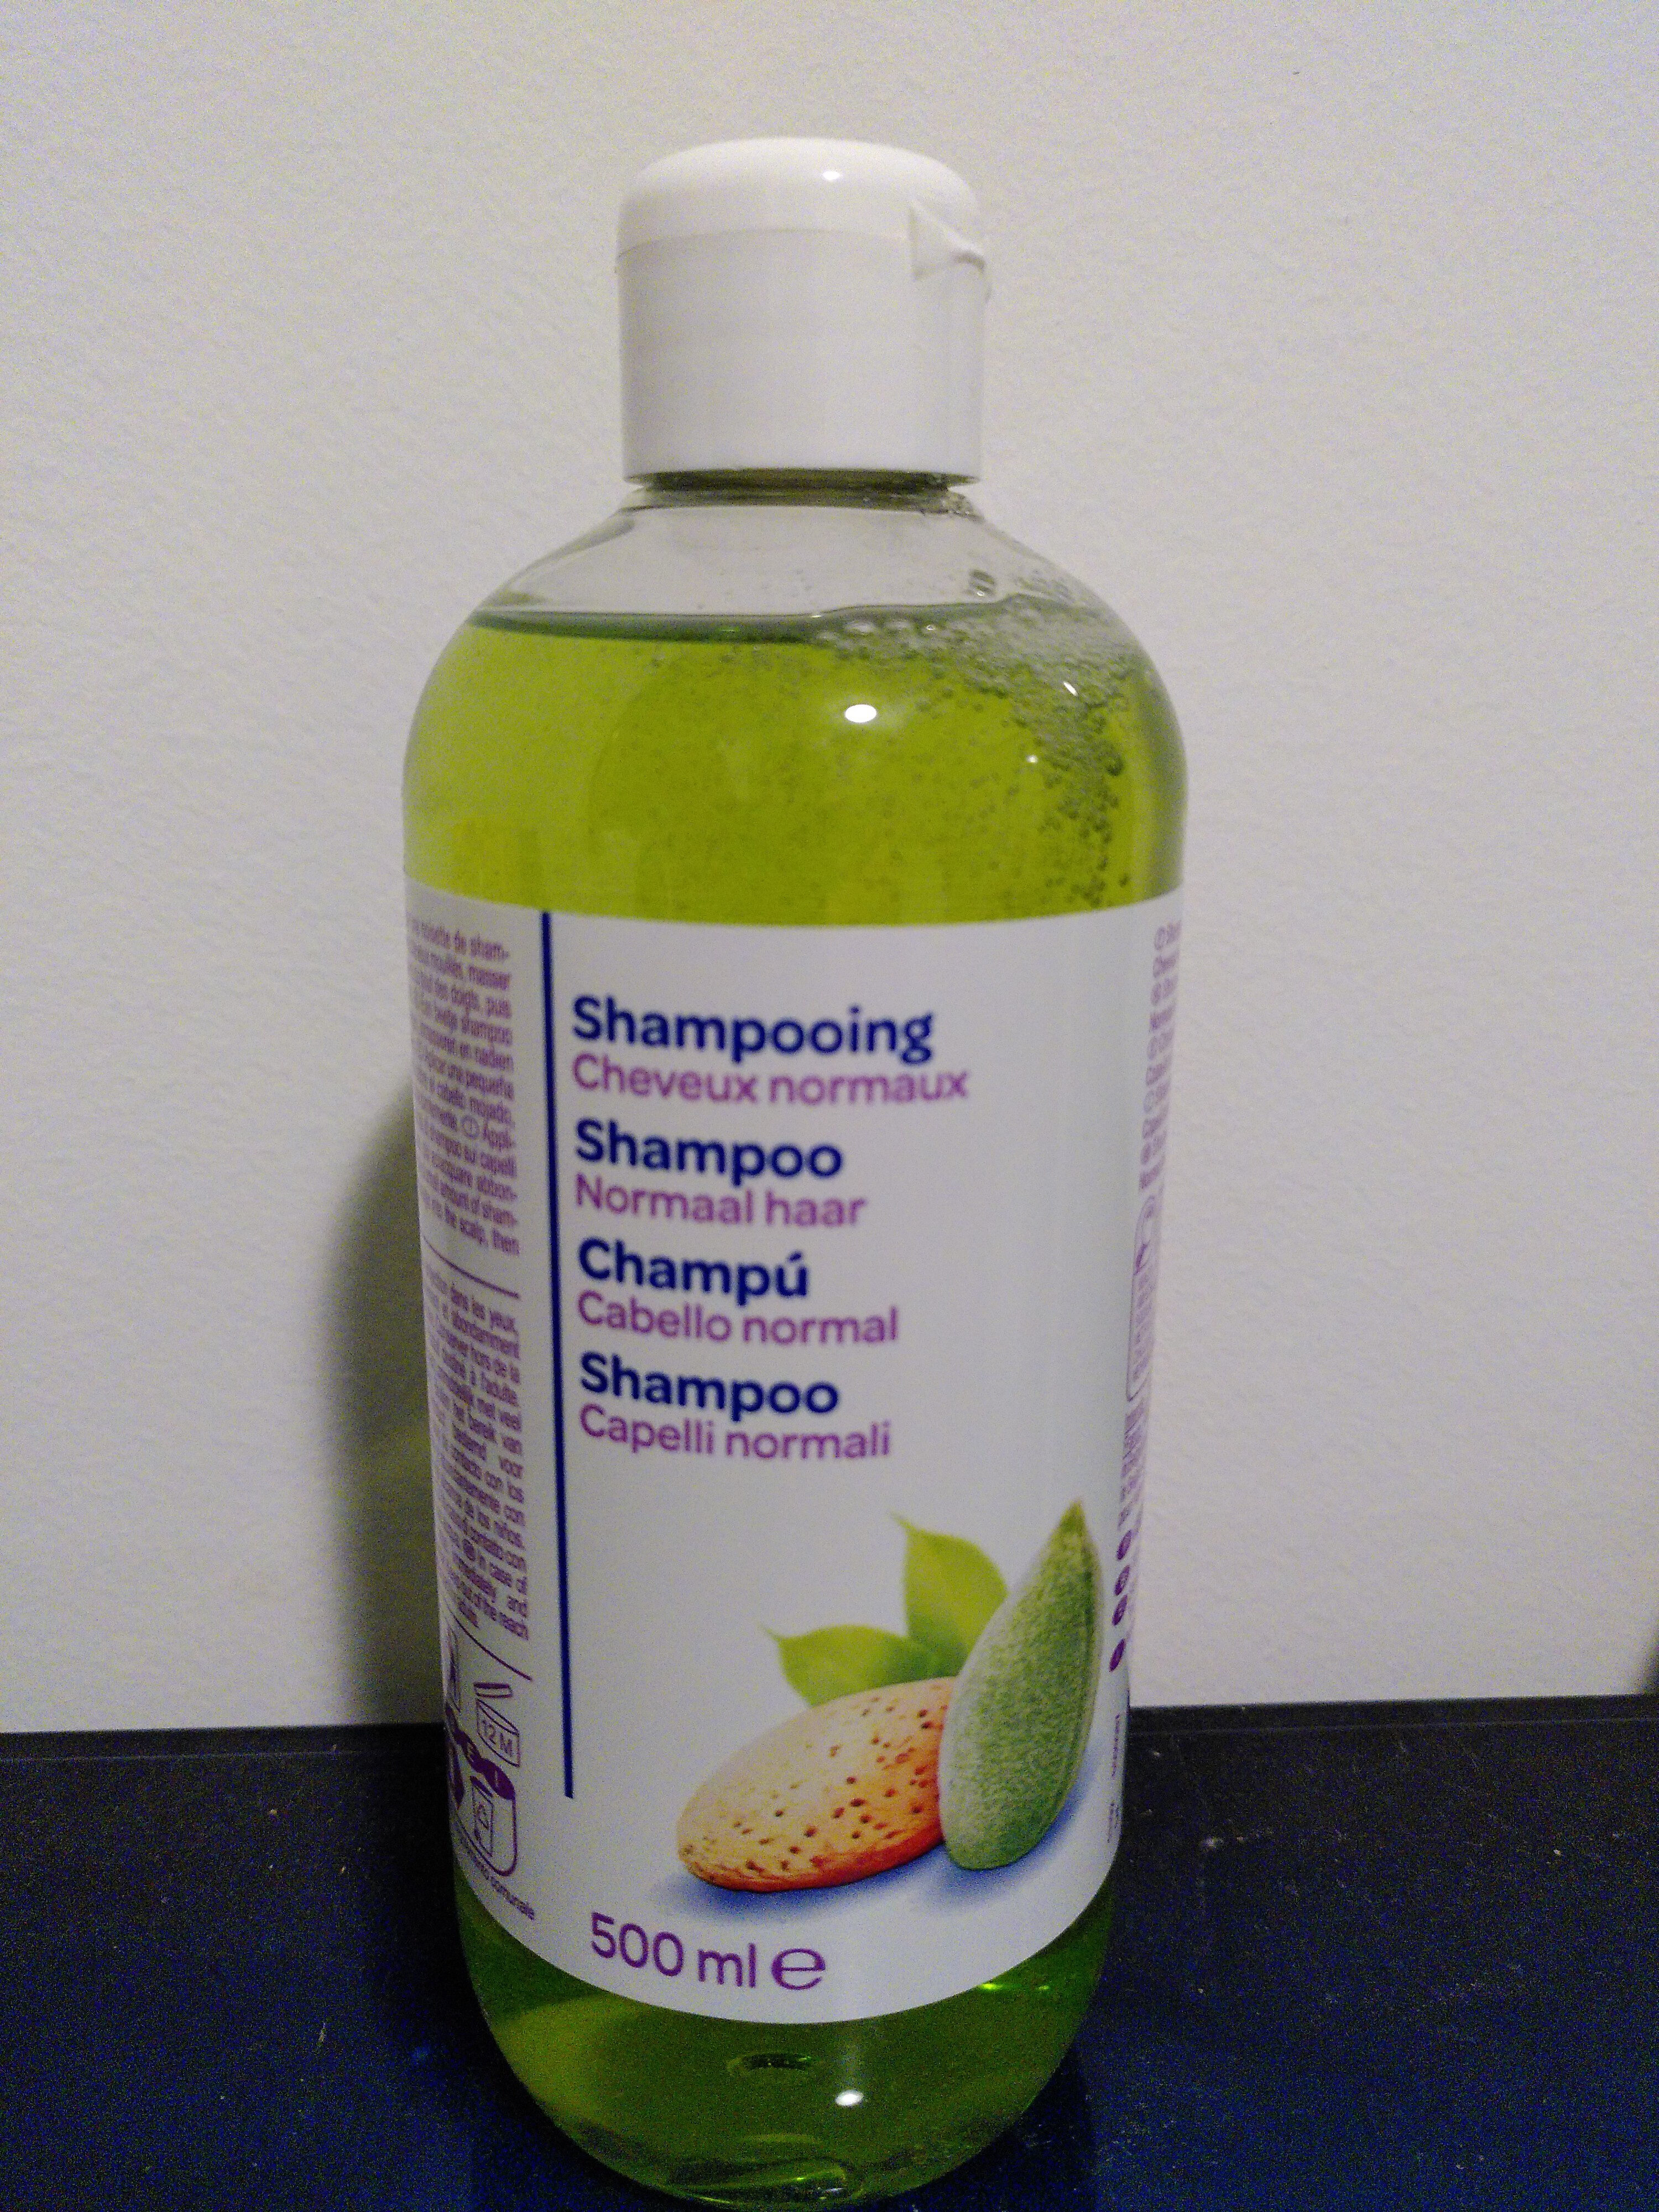 Shampooing - Product - en